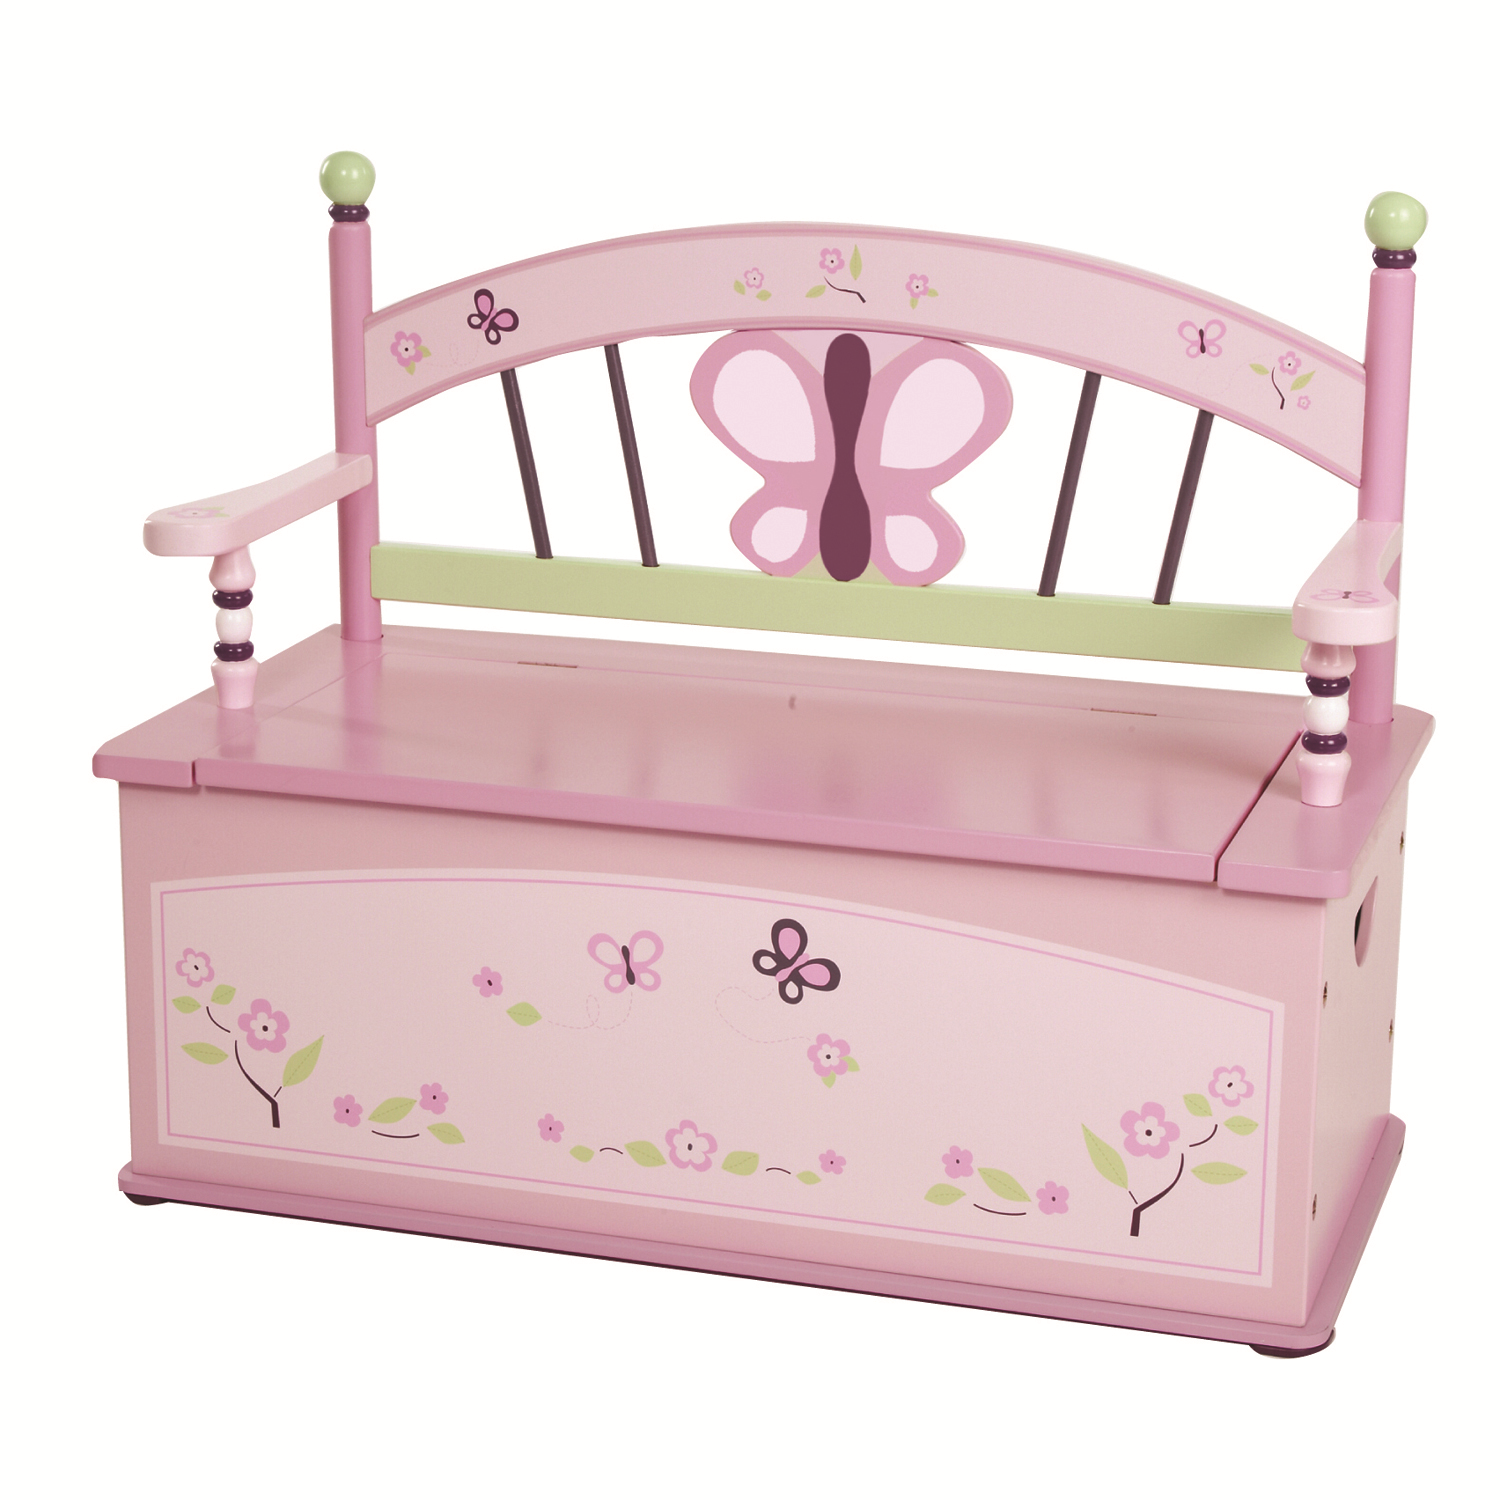 Sugar Plum Bench Seat with Storage